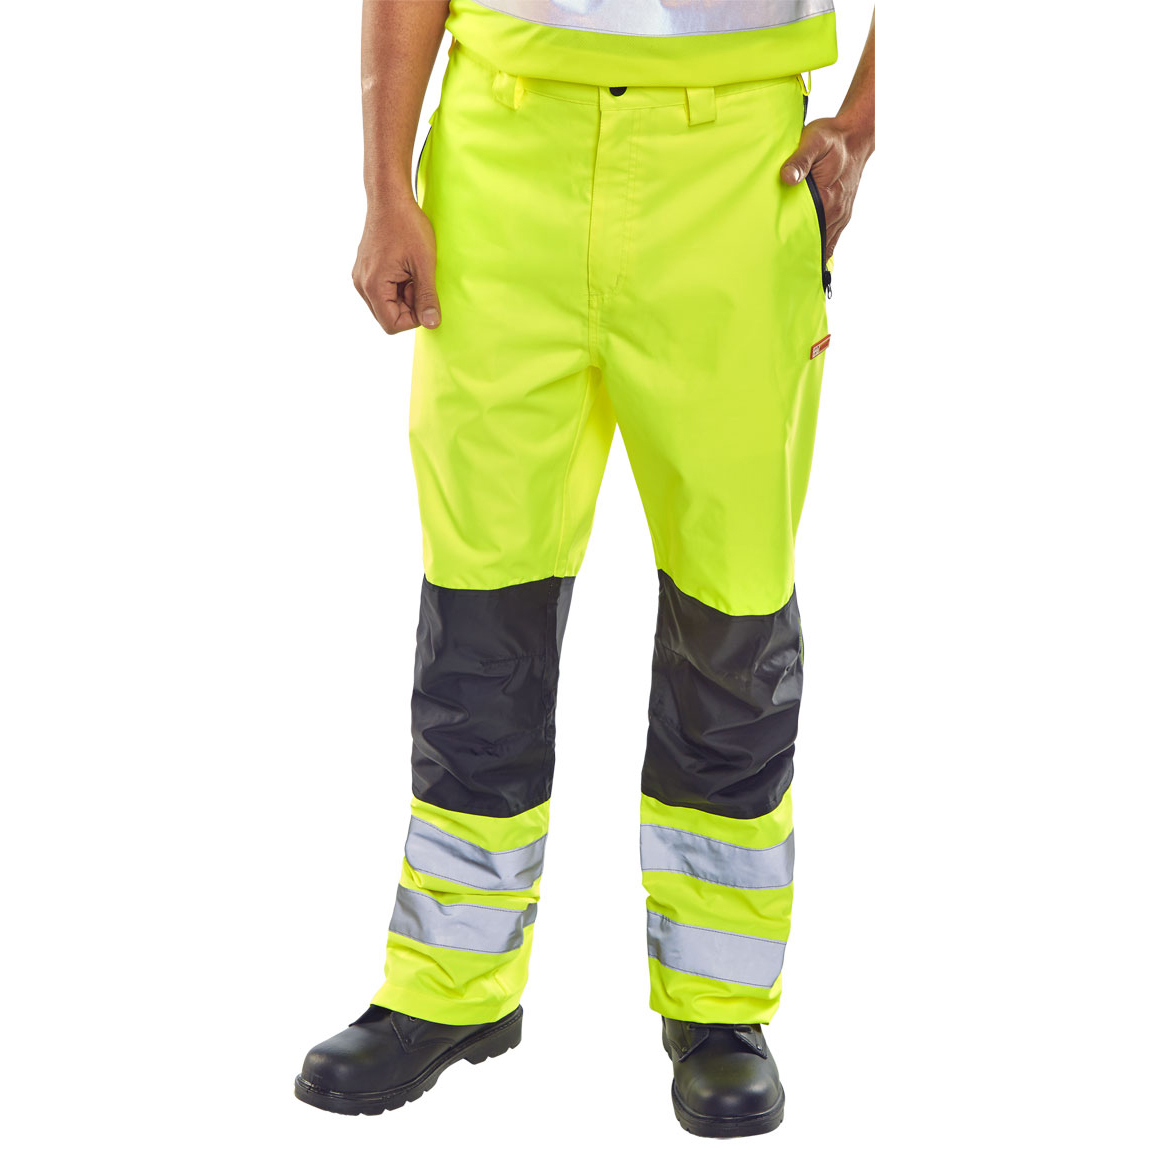 B-Seen Contrast Trousers Hi-Vis Waterproof M Saturn Yellow Ref BD85SYM *Up to 3 Day Leadtime*